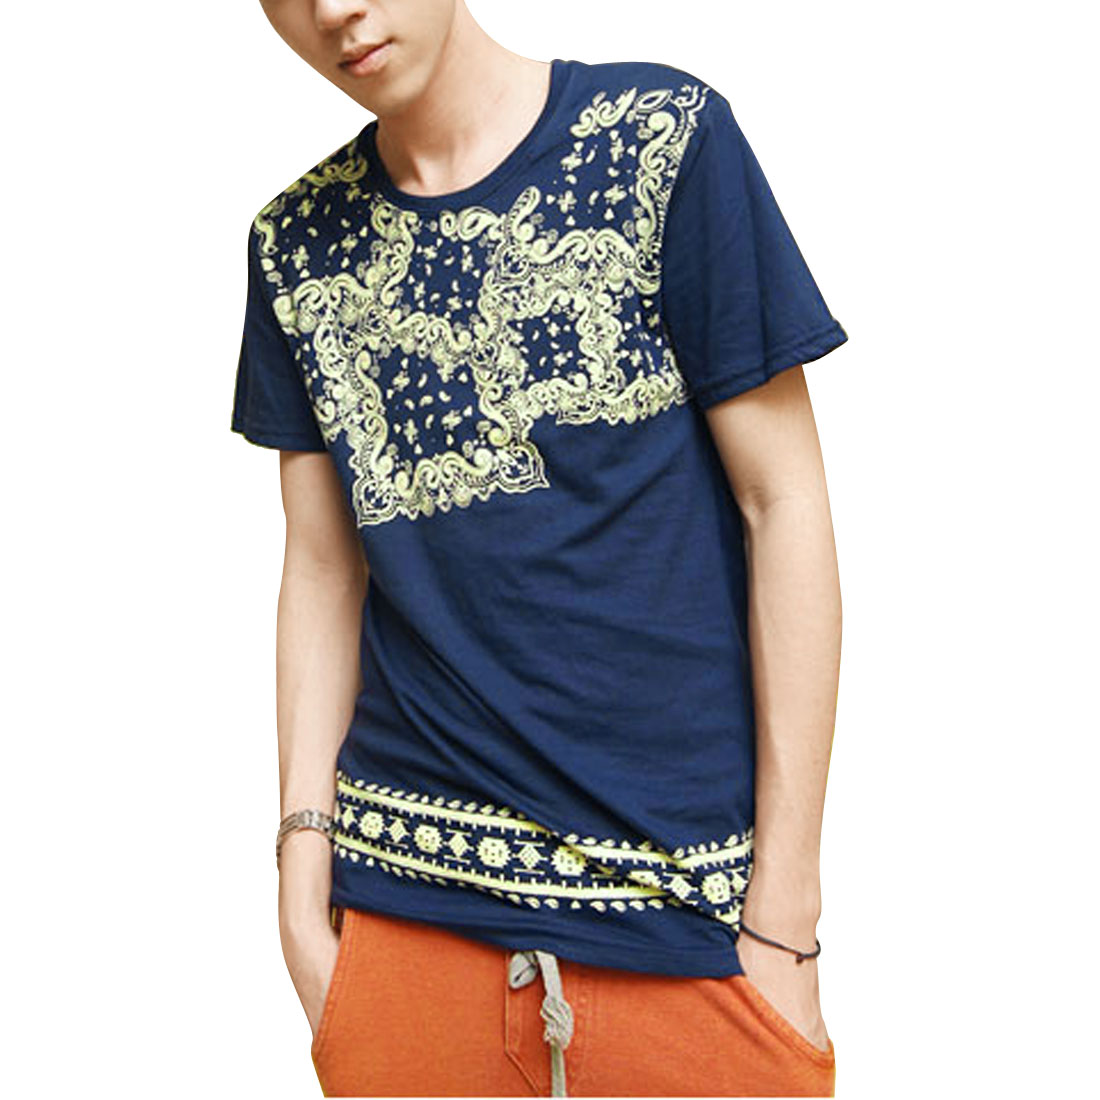 Man Fashional Paisley Pattern Casual T-Shirt Blouse Top Steel Blue S